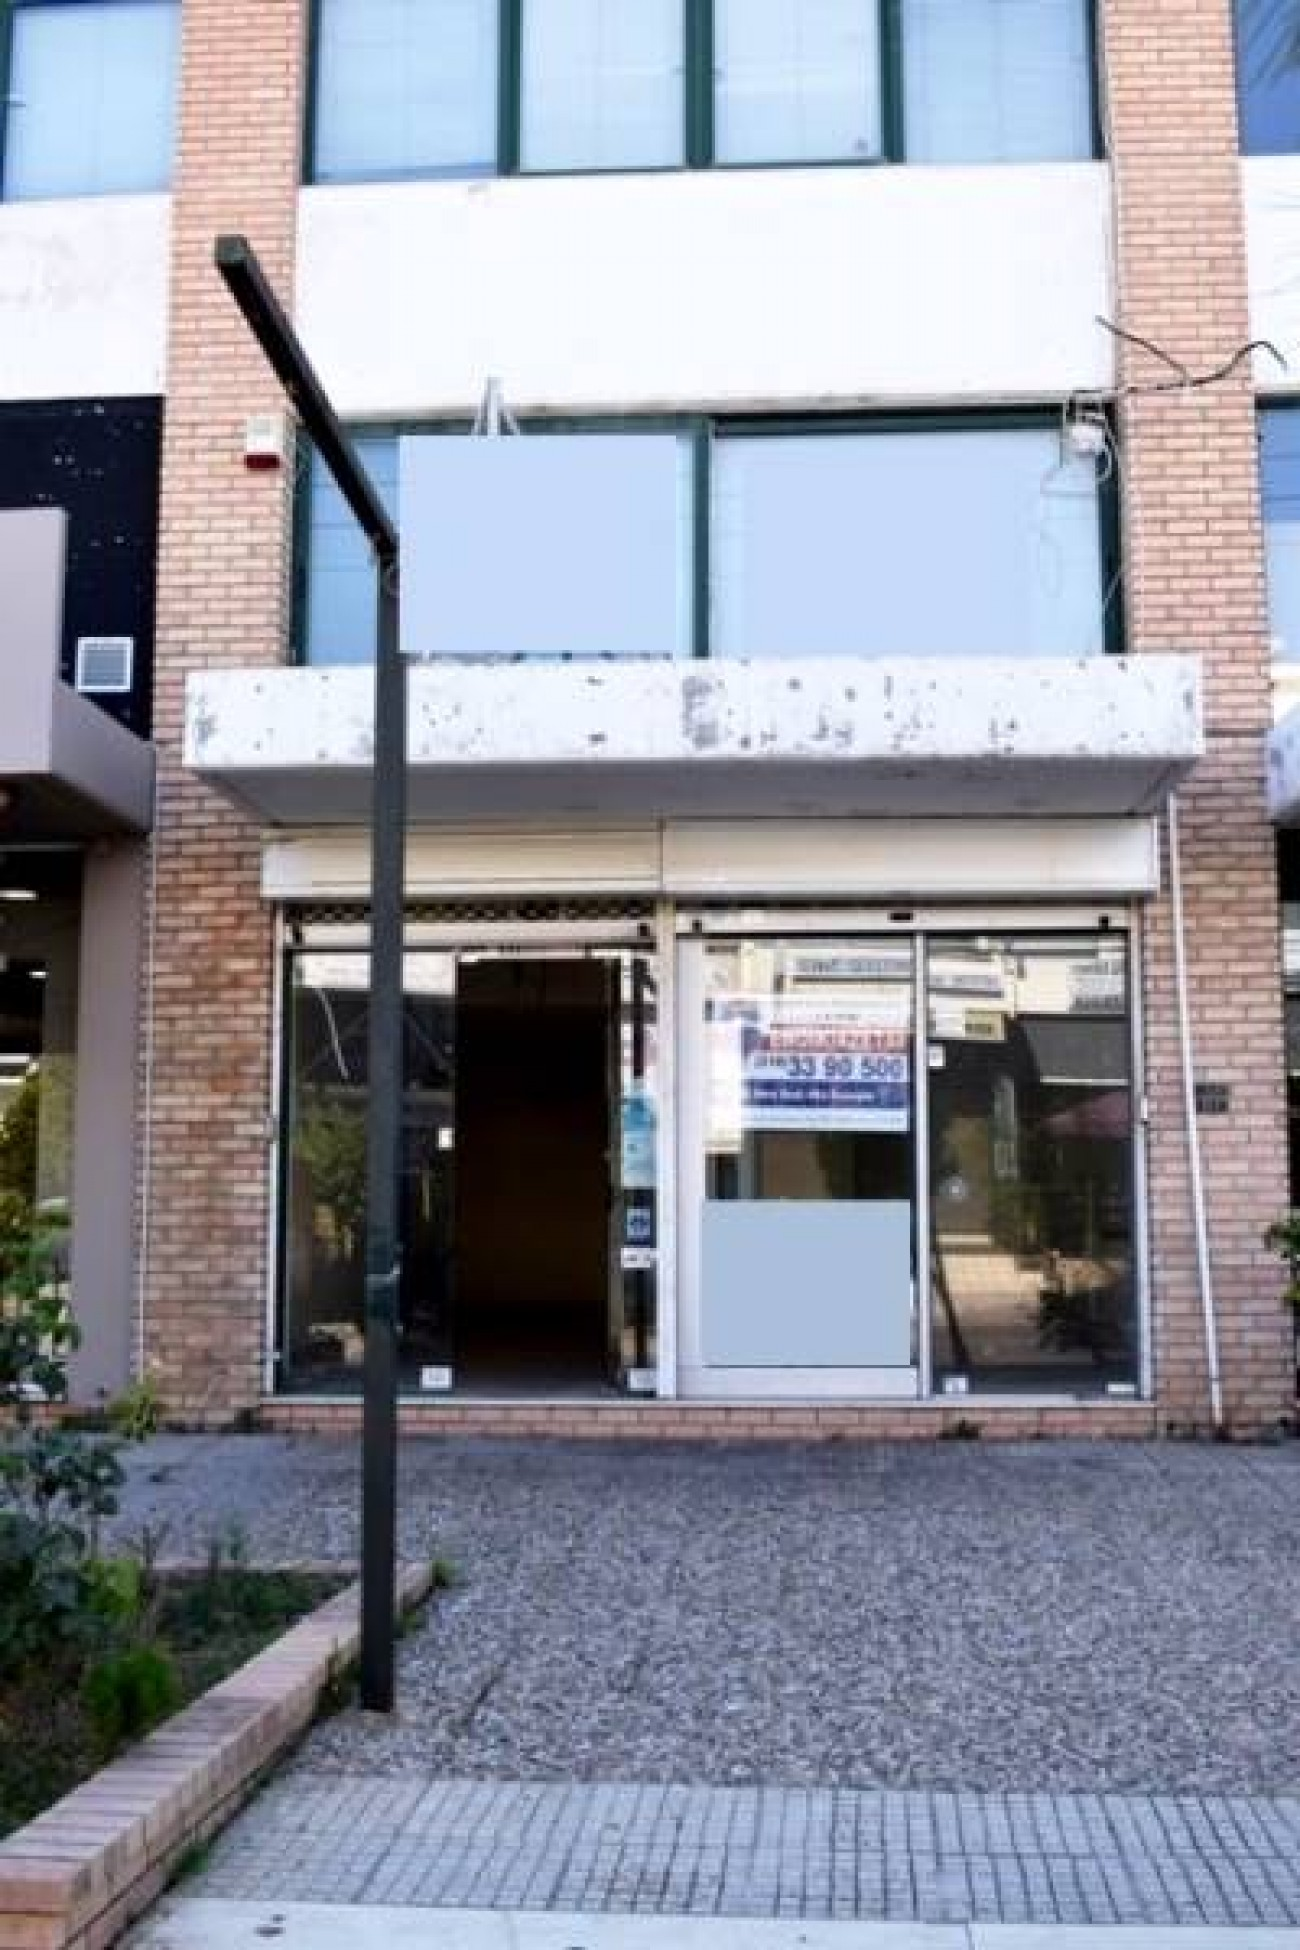 Shop for Rent in Central & Southern Suburbs, Prefecture of Attica